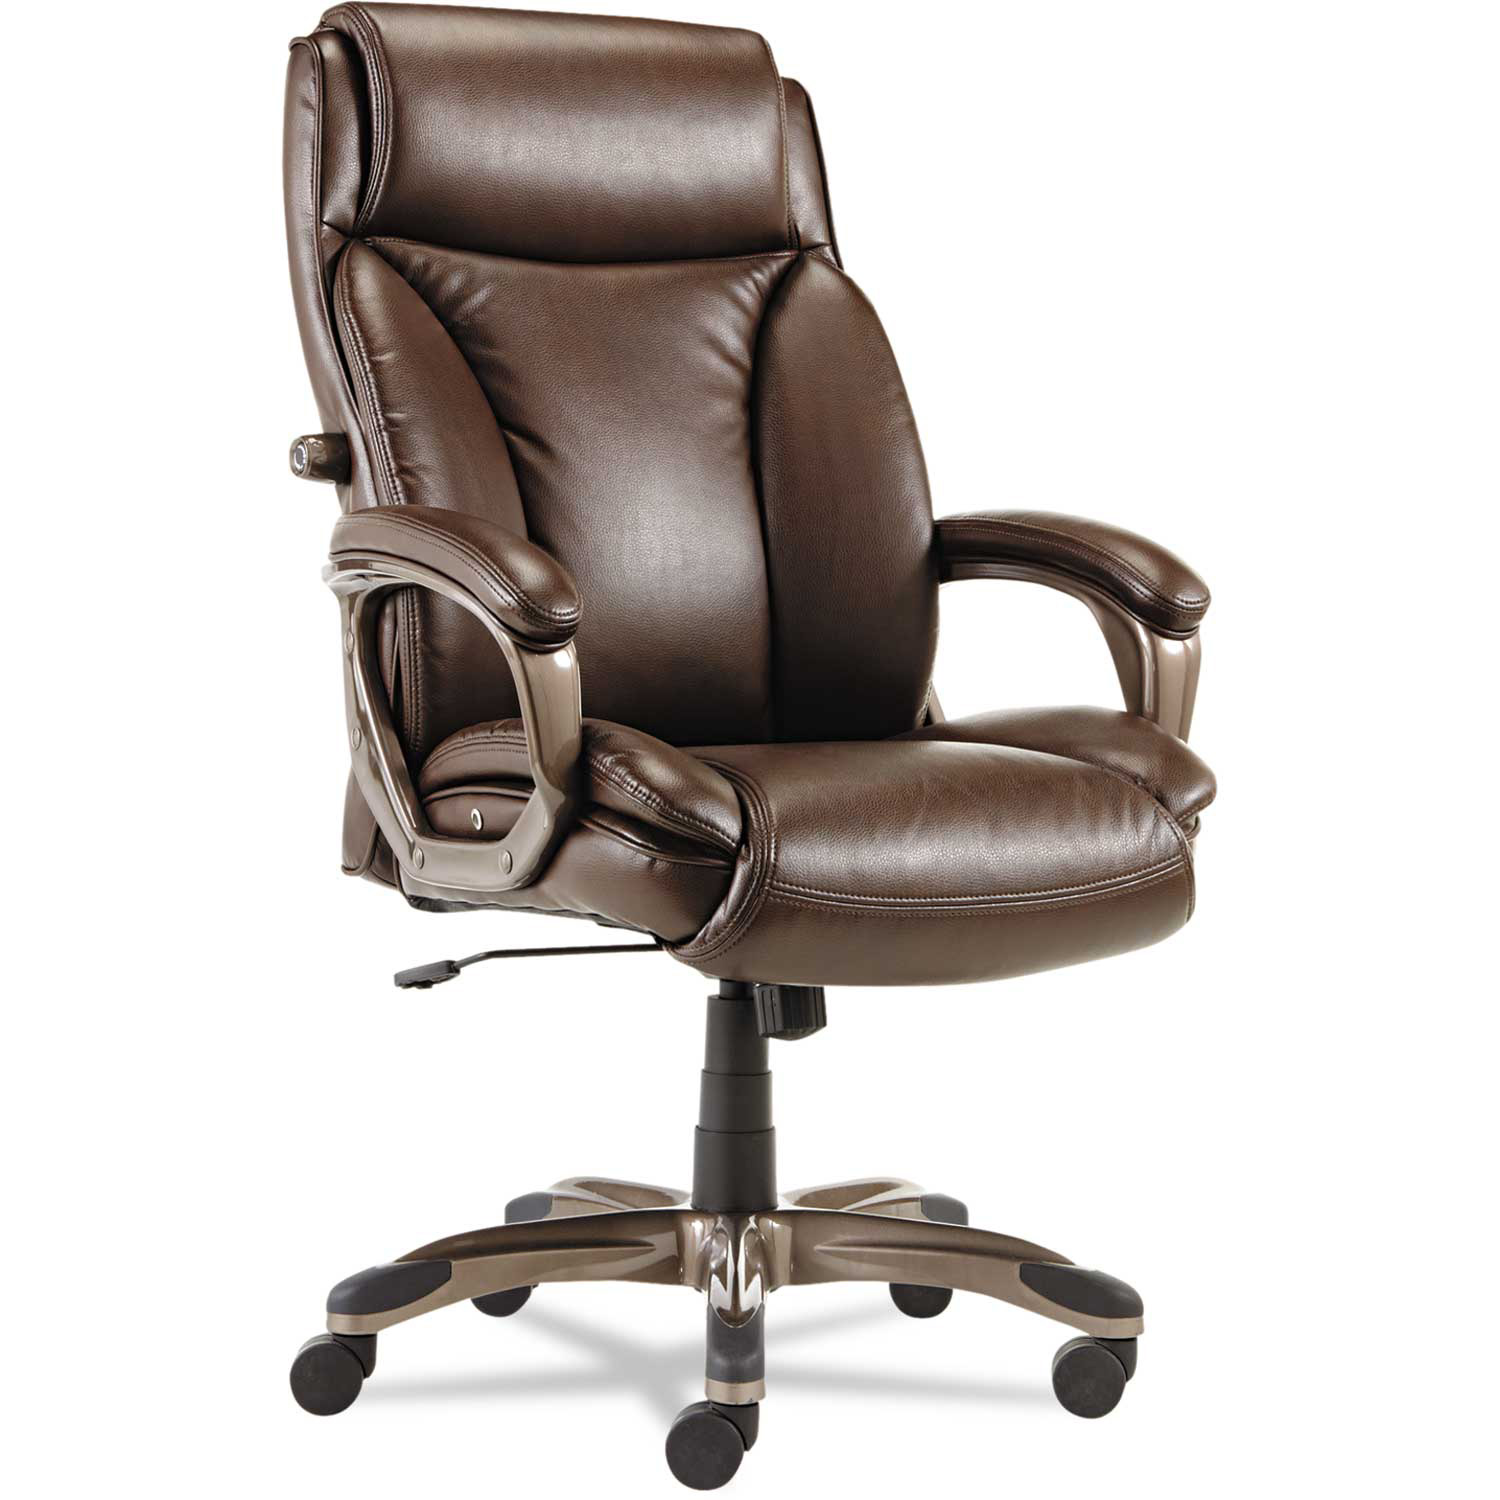 Alera Executive Leather Chair with Coil Spring Cushioning Leather Brown Veon Series  by